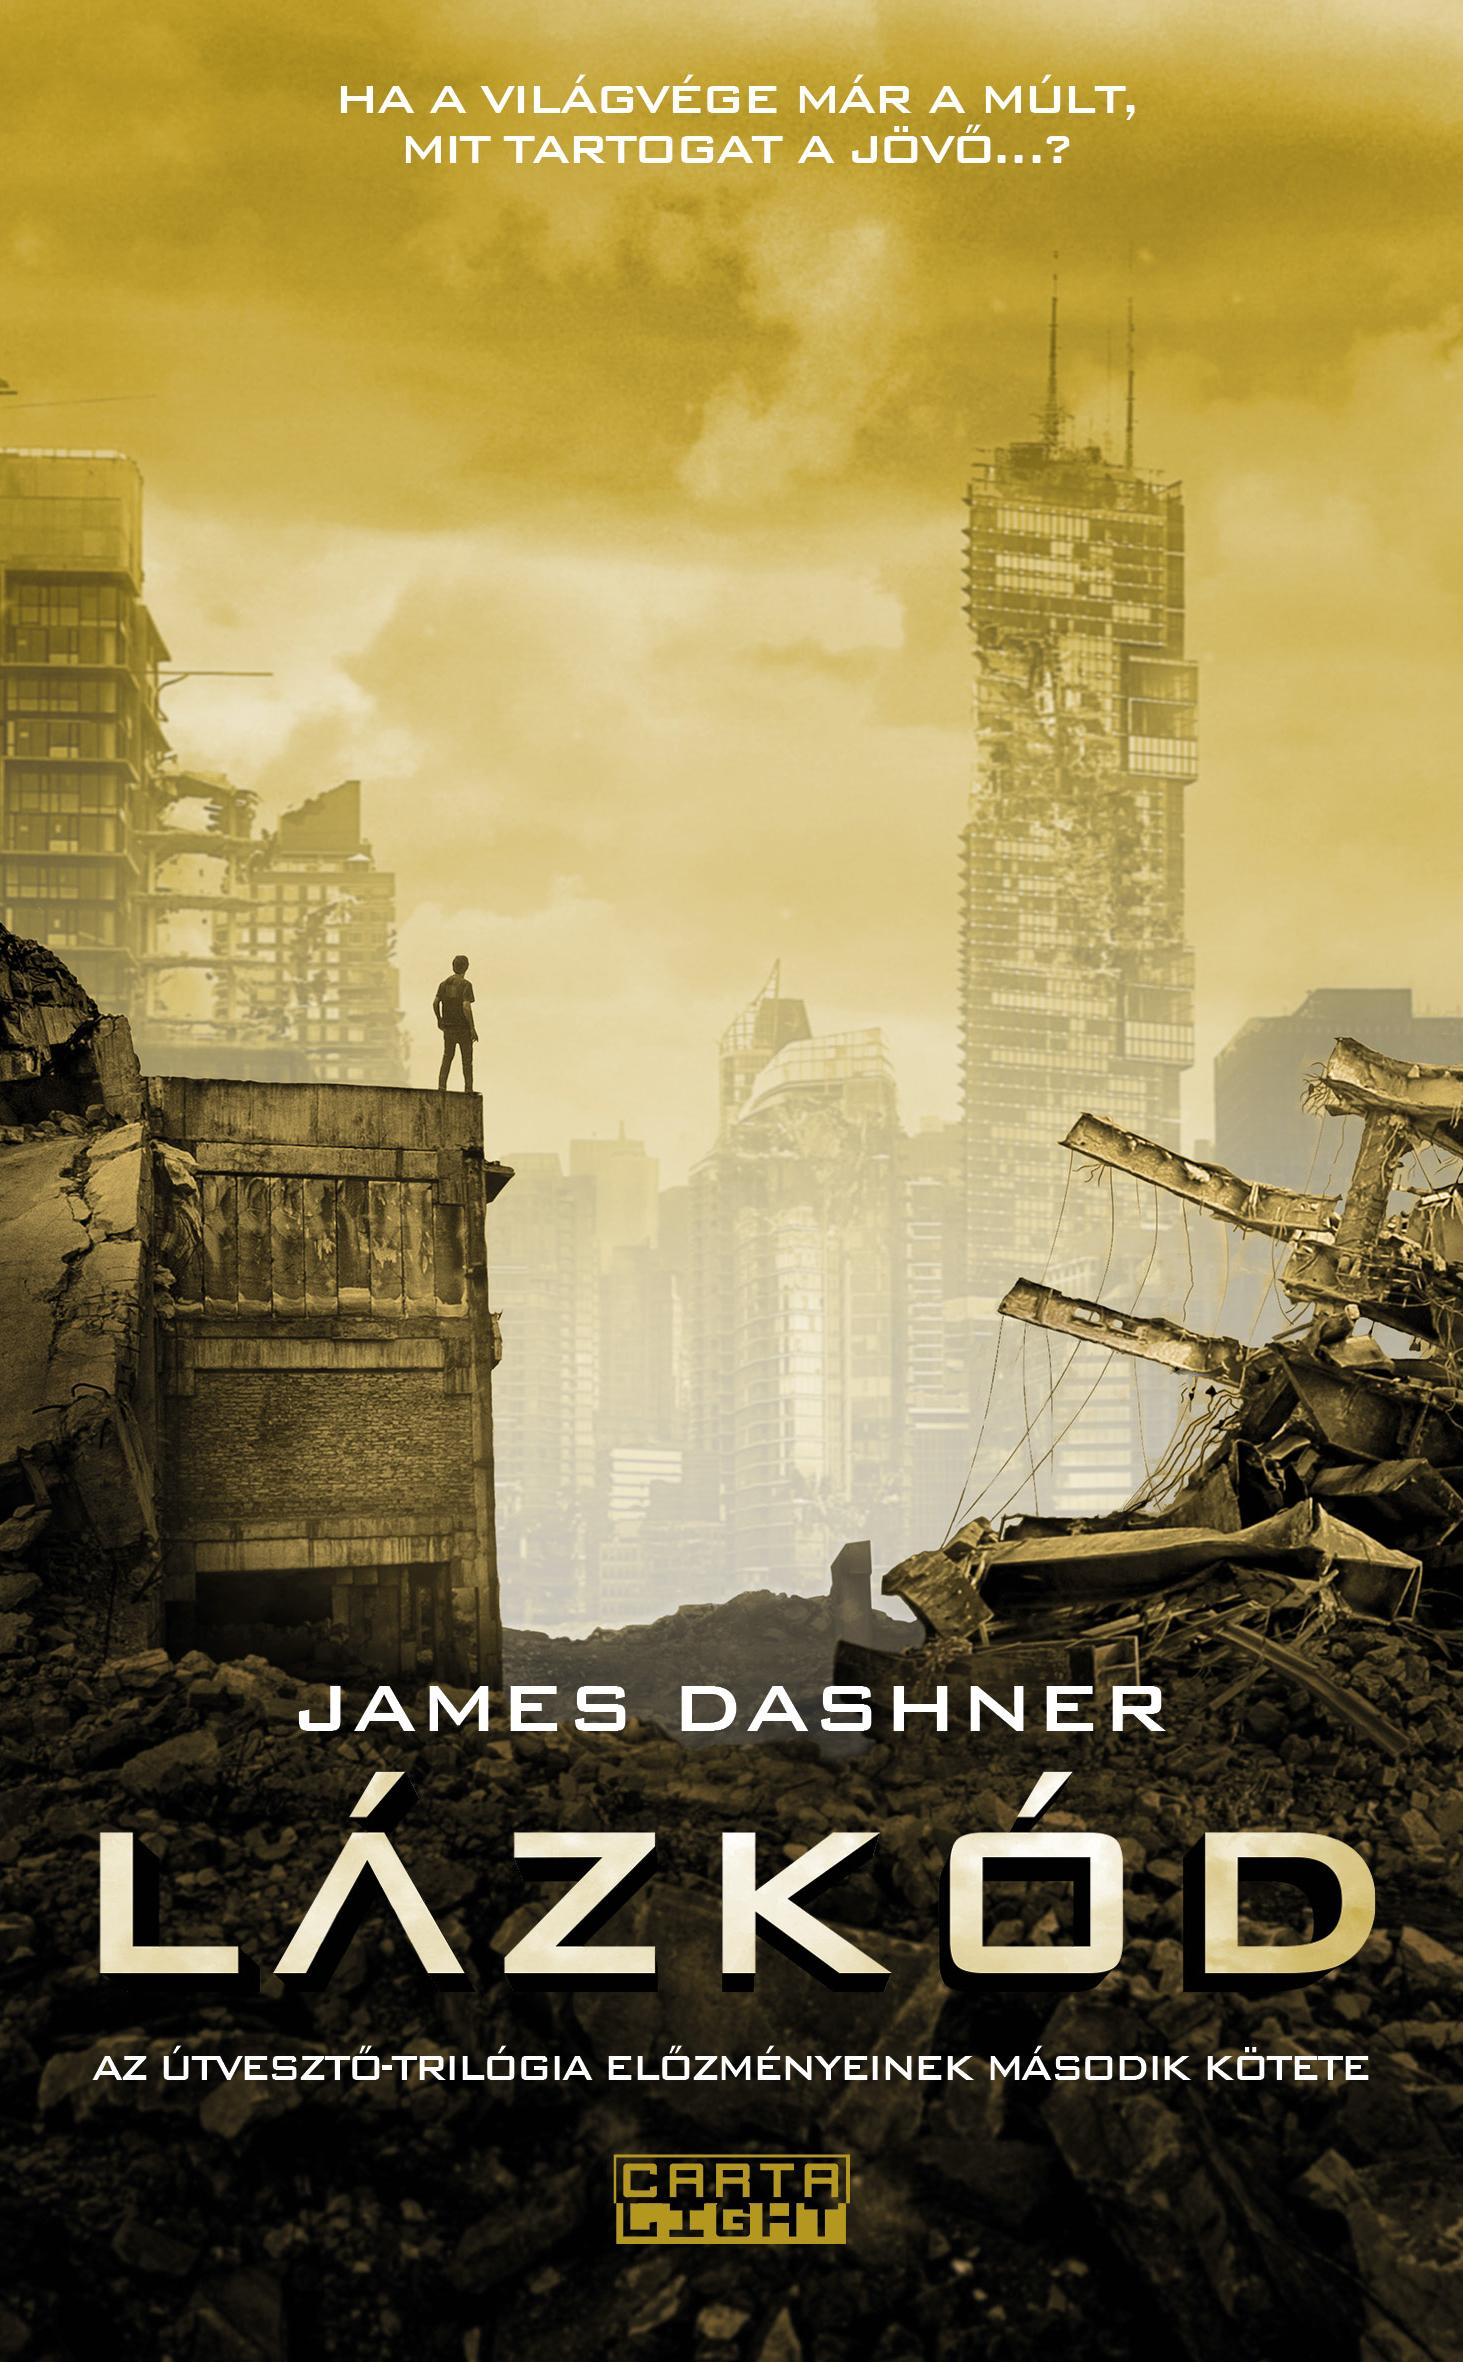 DASHNER, JAMES - LÁZKÓD